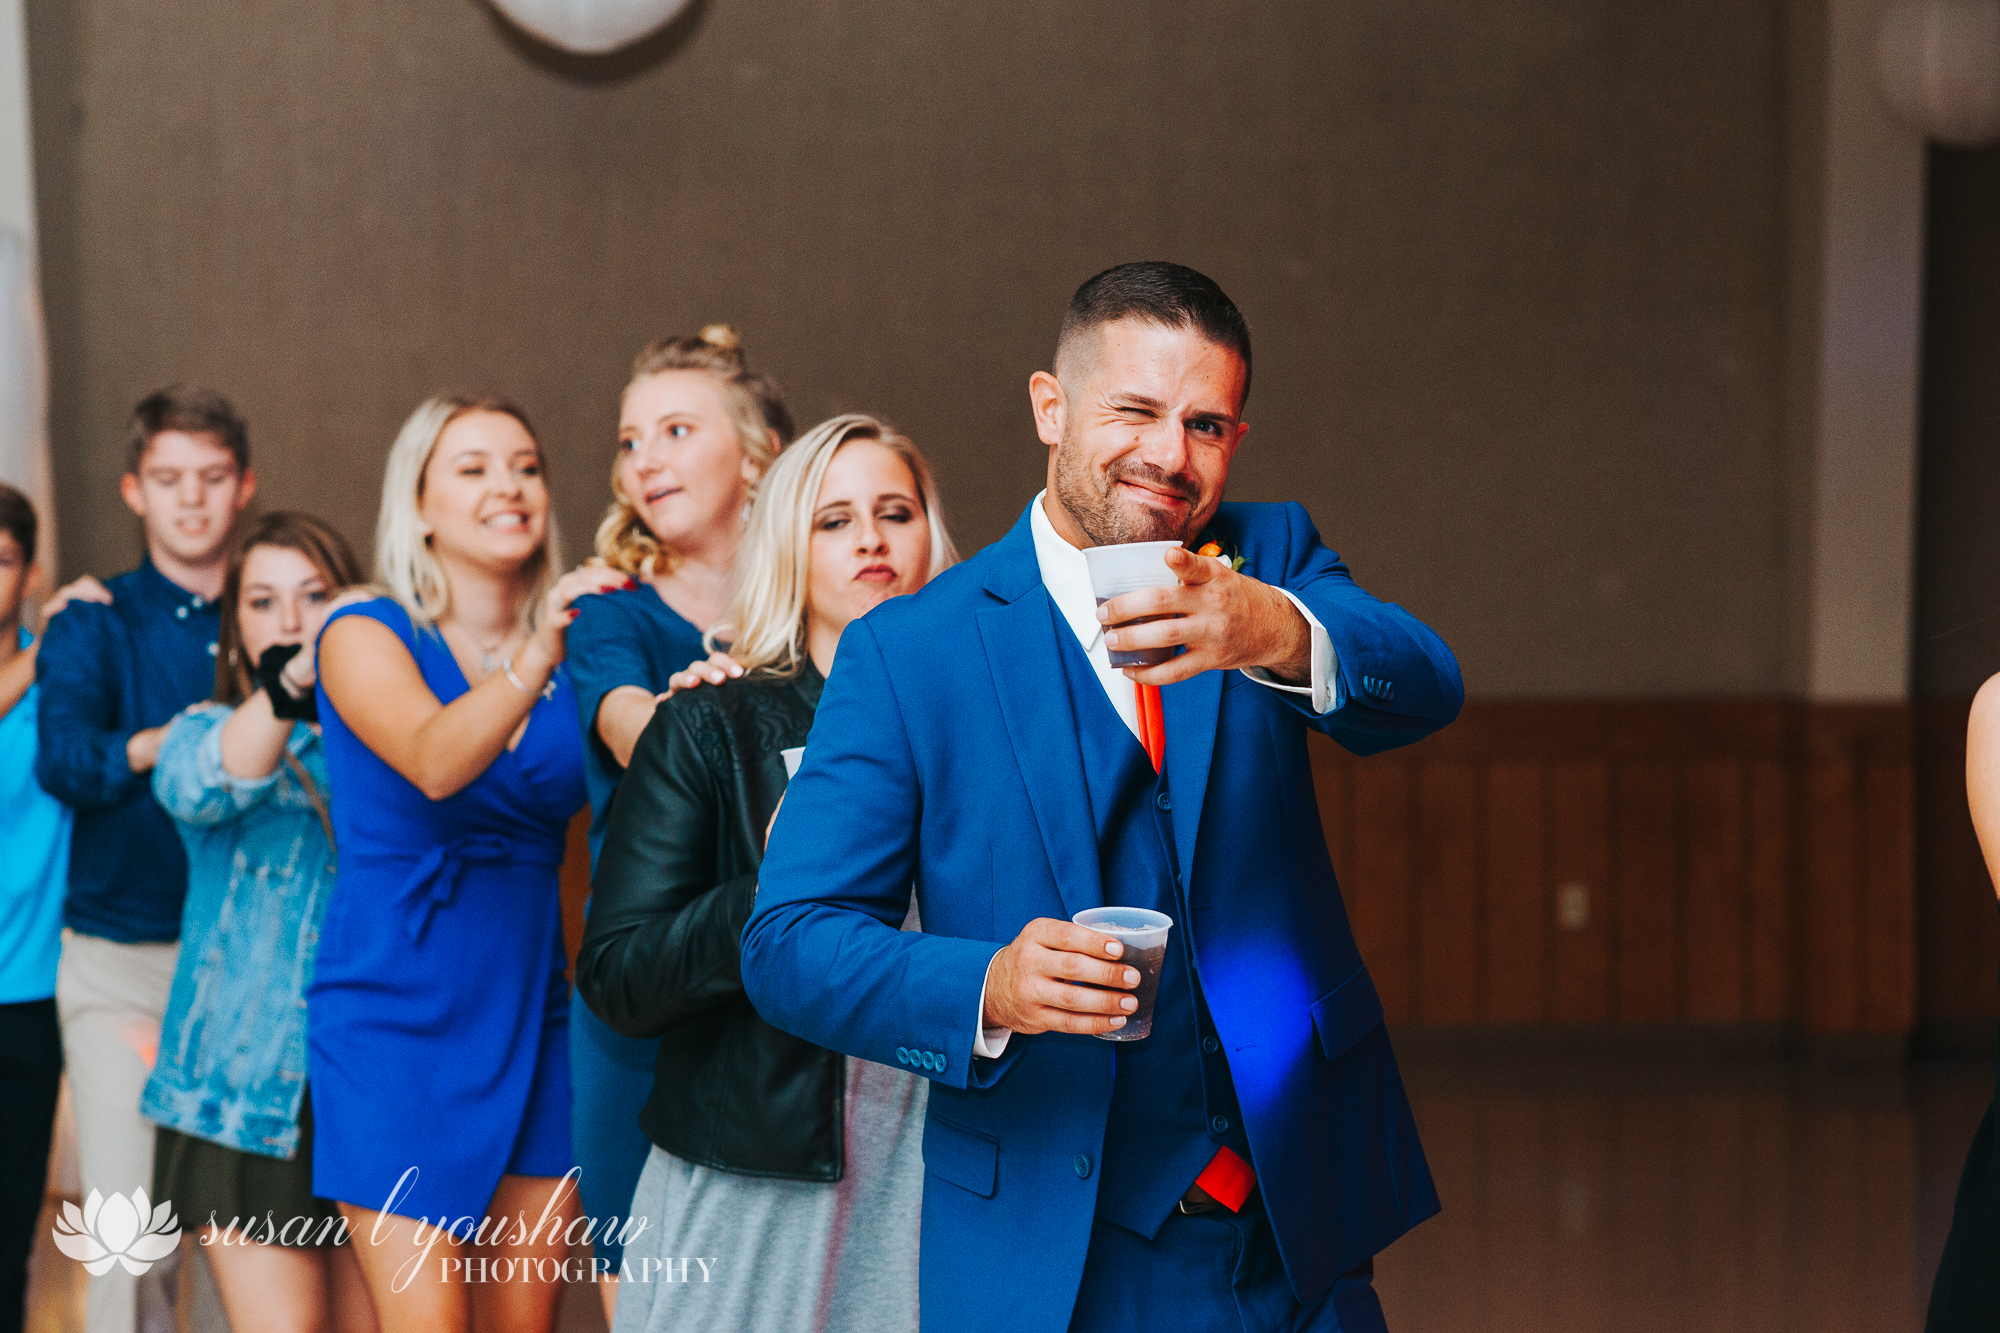 BLOG Kylie and corey Bennet 10-13-2018 SLY Photography LLC-197.jpg